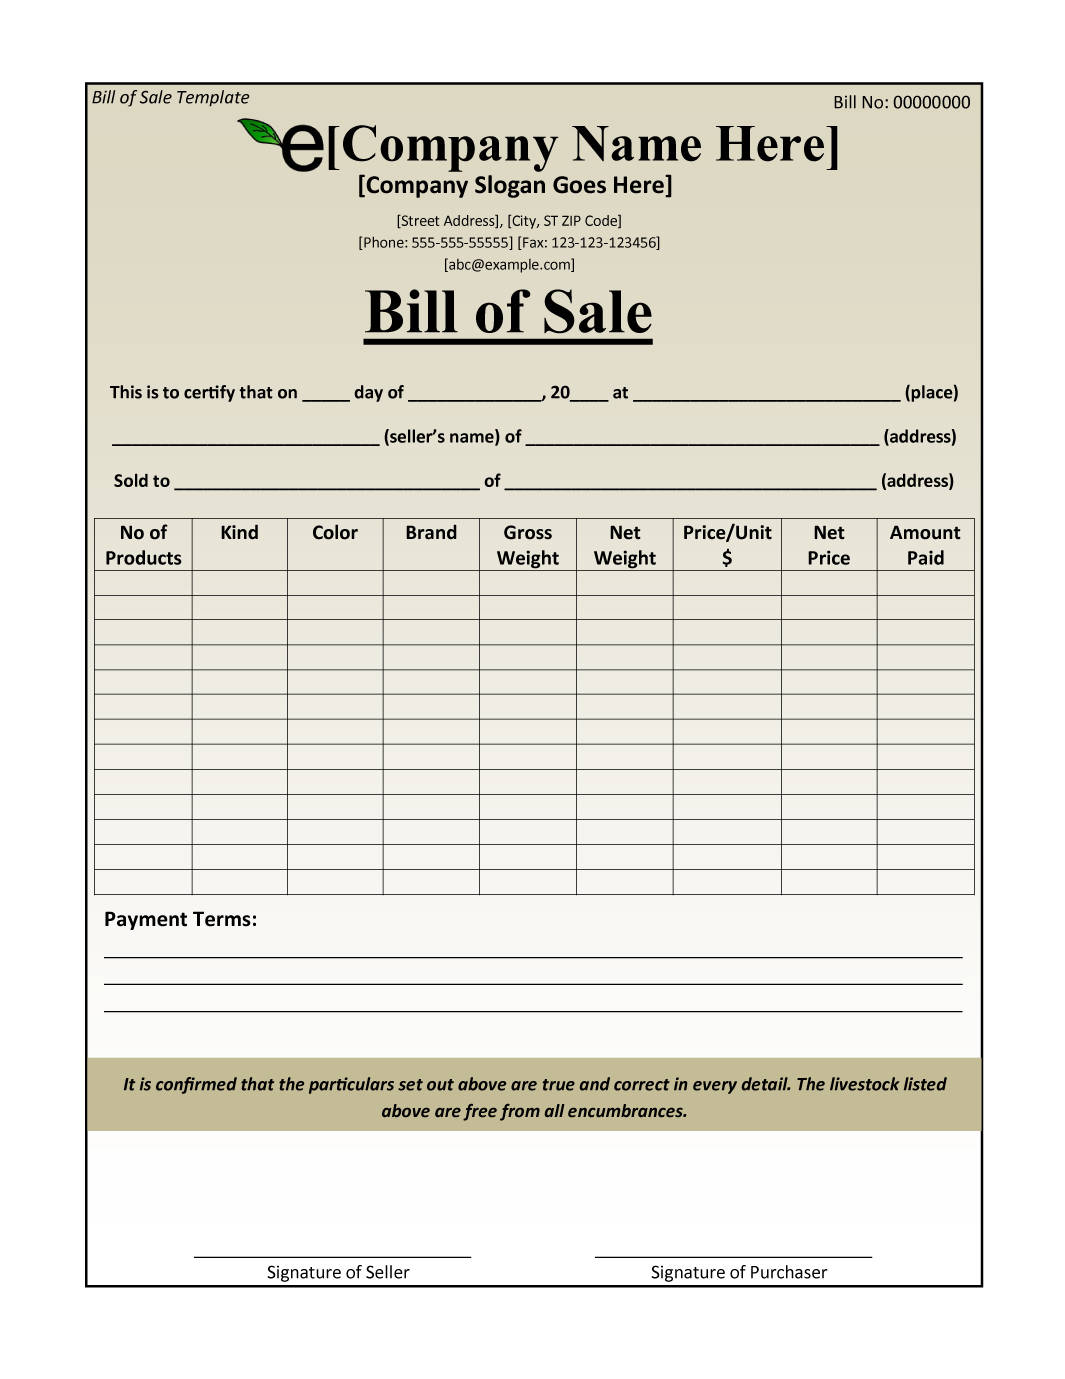 bill-of-sale-template-37